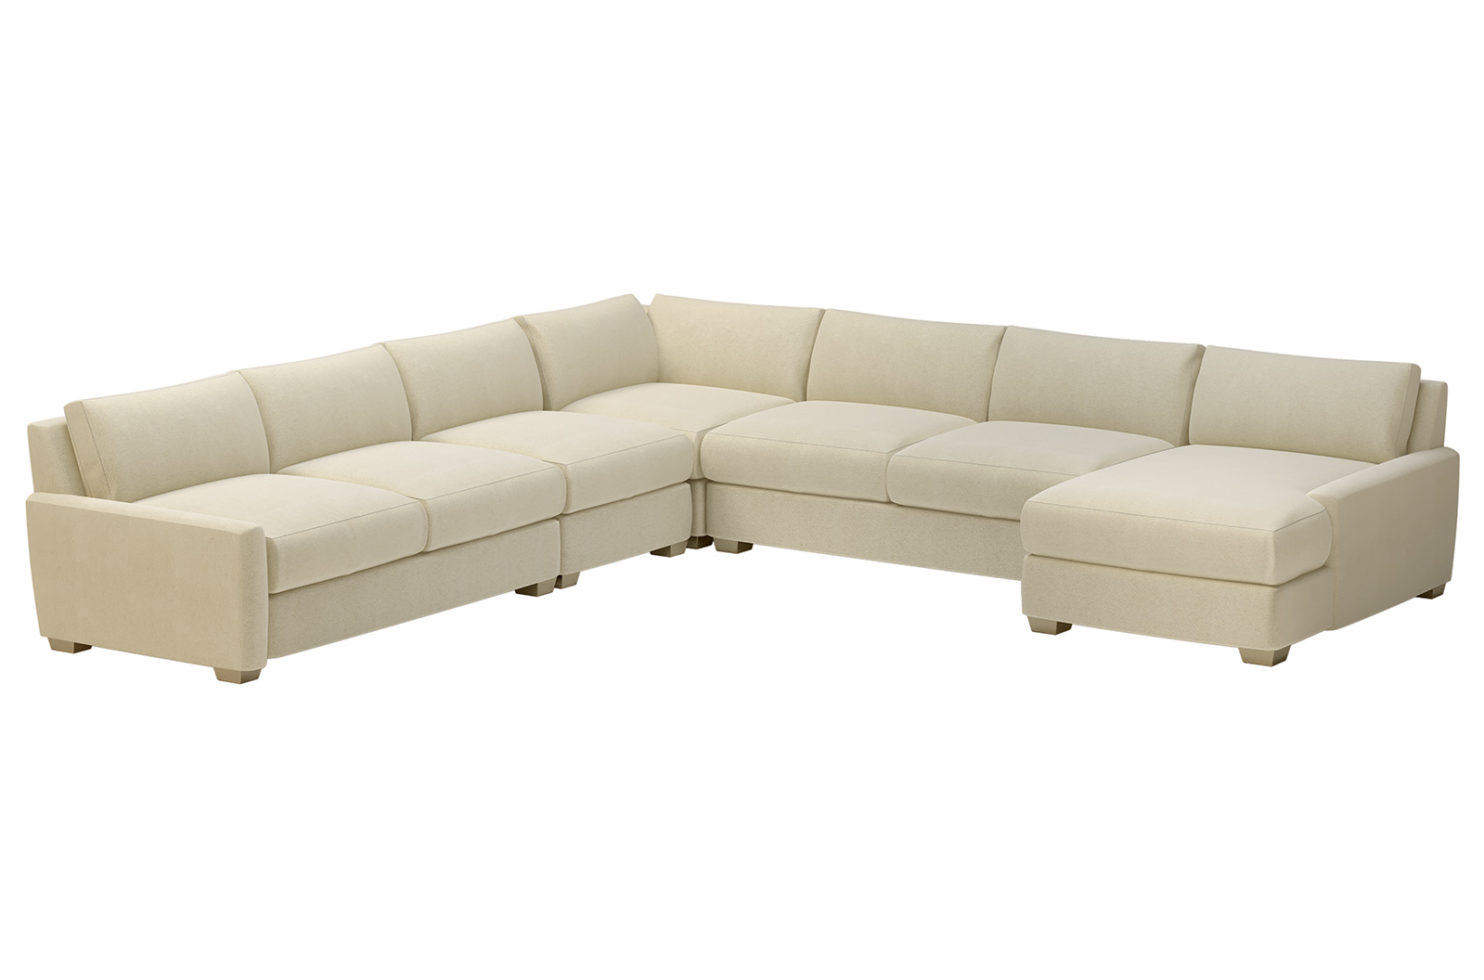 fizz imperial full right chaise 105FT004P2